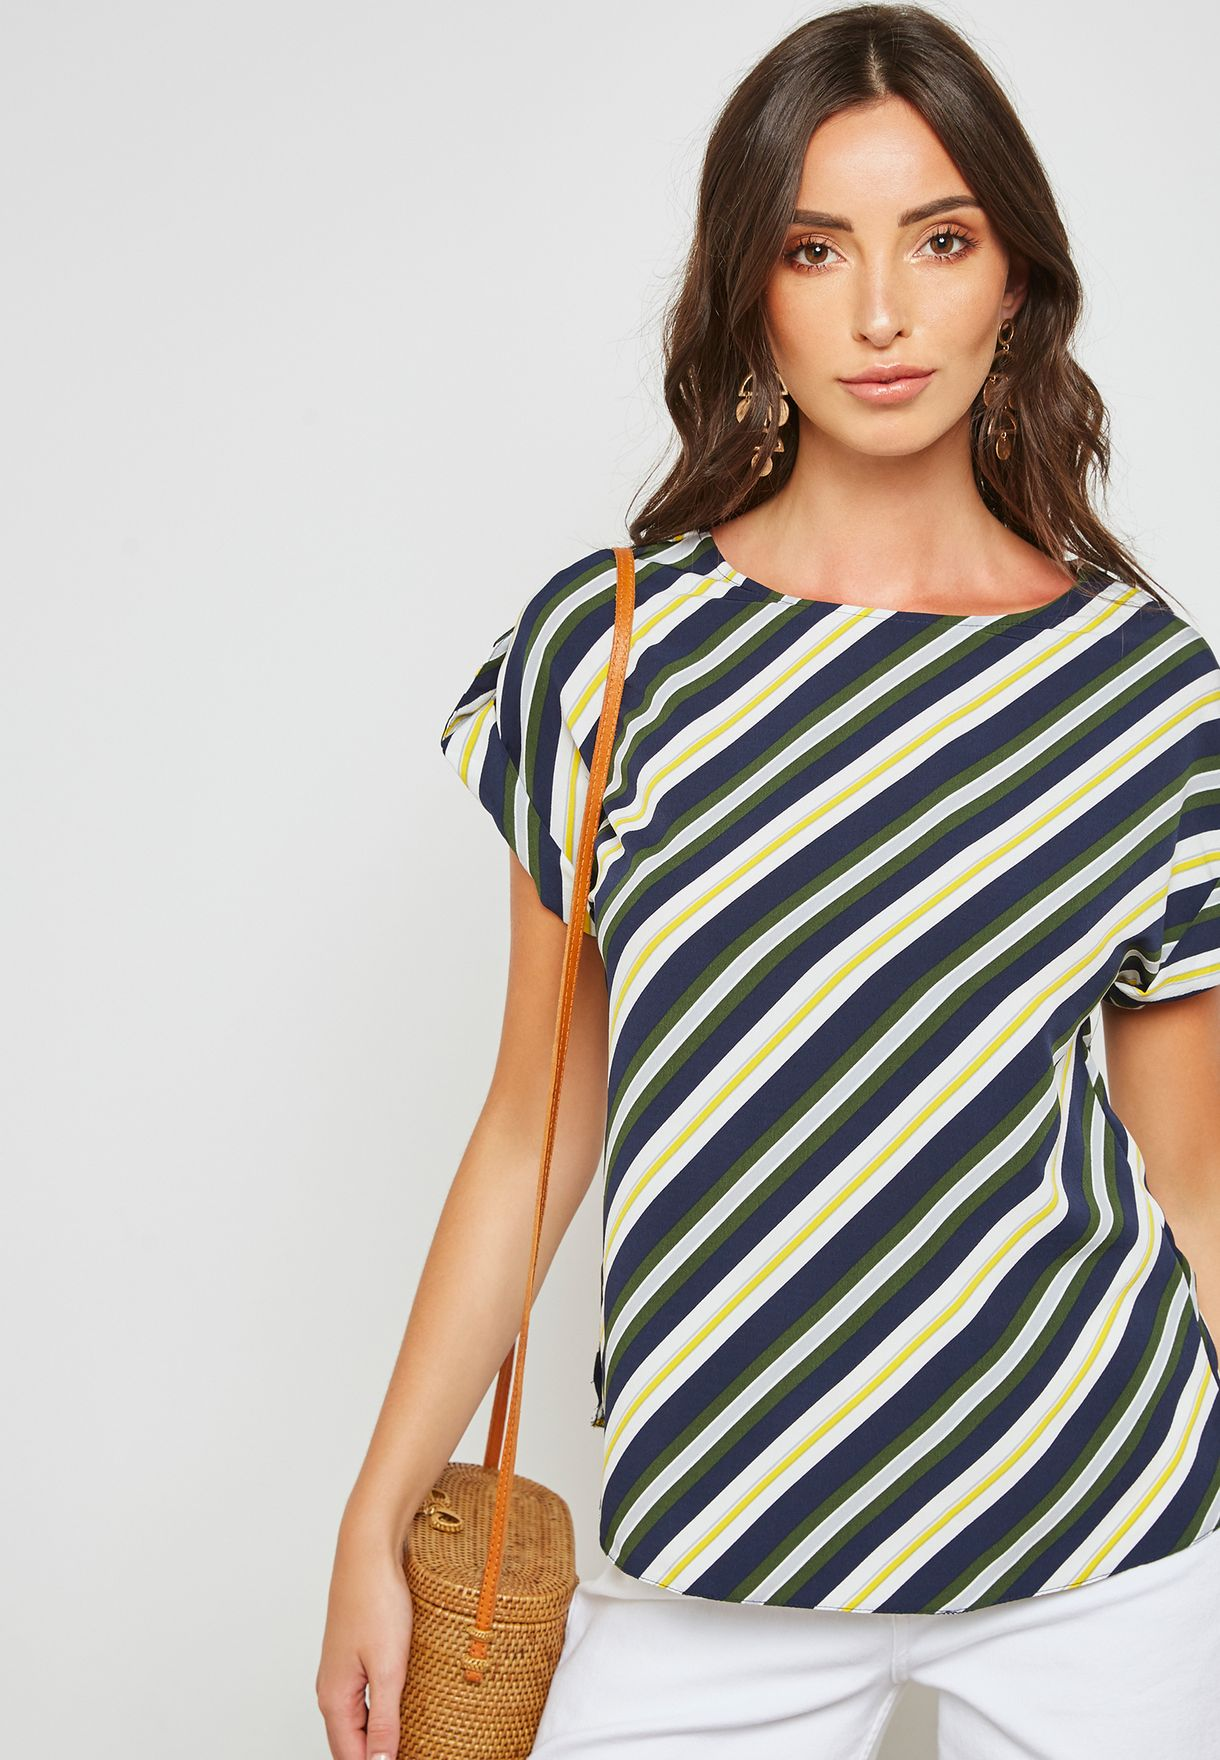 d7357d0b589 Shop Dorothy Perkins prints Striped Roll Sleeves Top 5758782 for ...